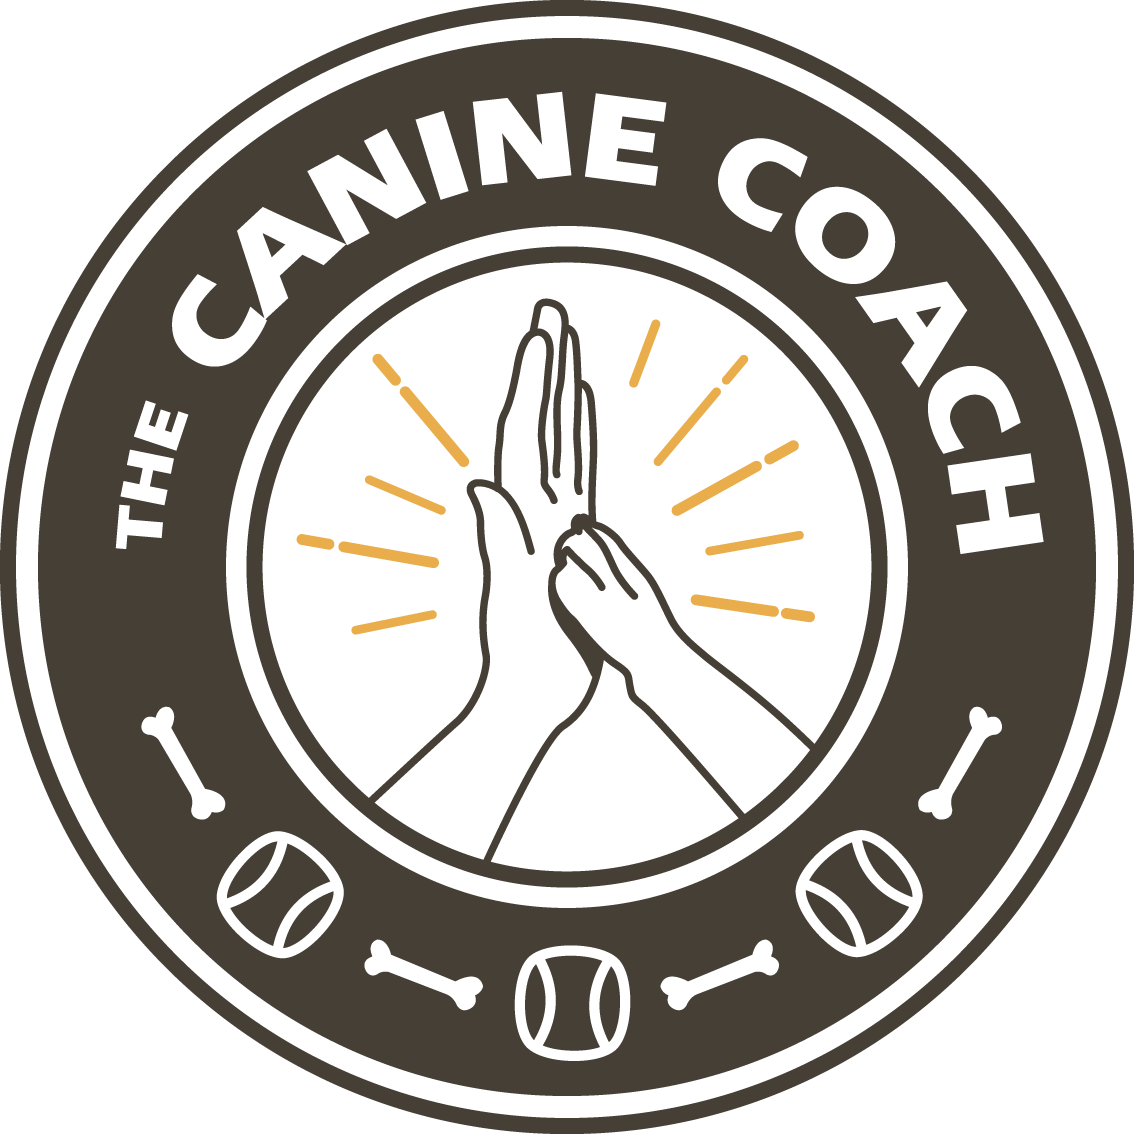 The Canine Coach